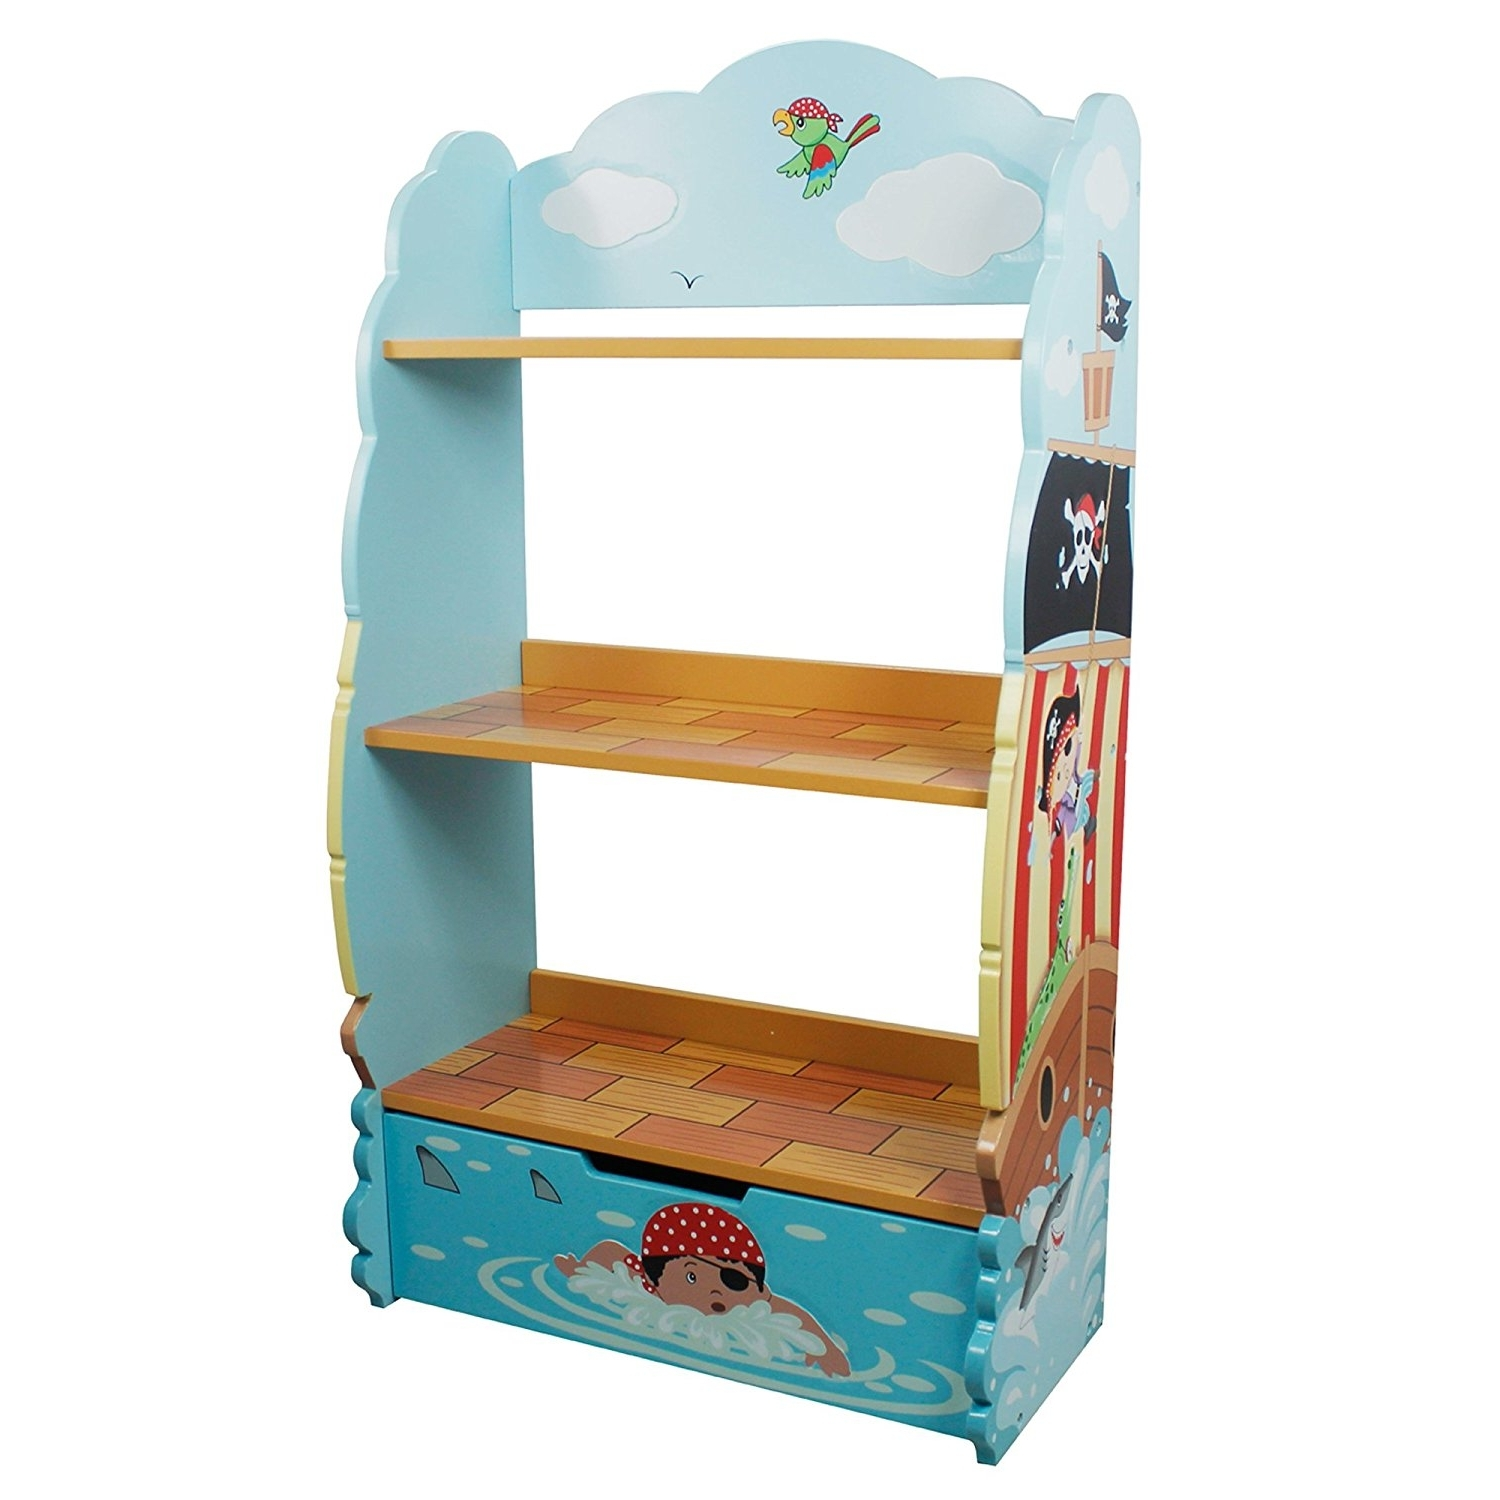 Fashionable Hand Painted Bookcases Regarding Amazon: Fantasy Fields – Pirate Island Thematic Kids Wooden (View 3 of 15)